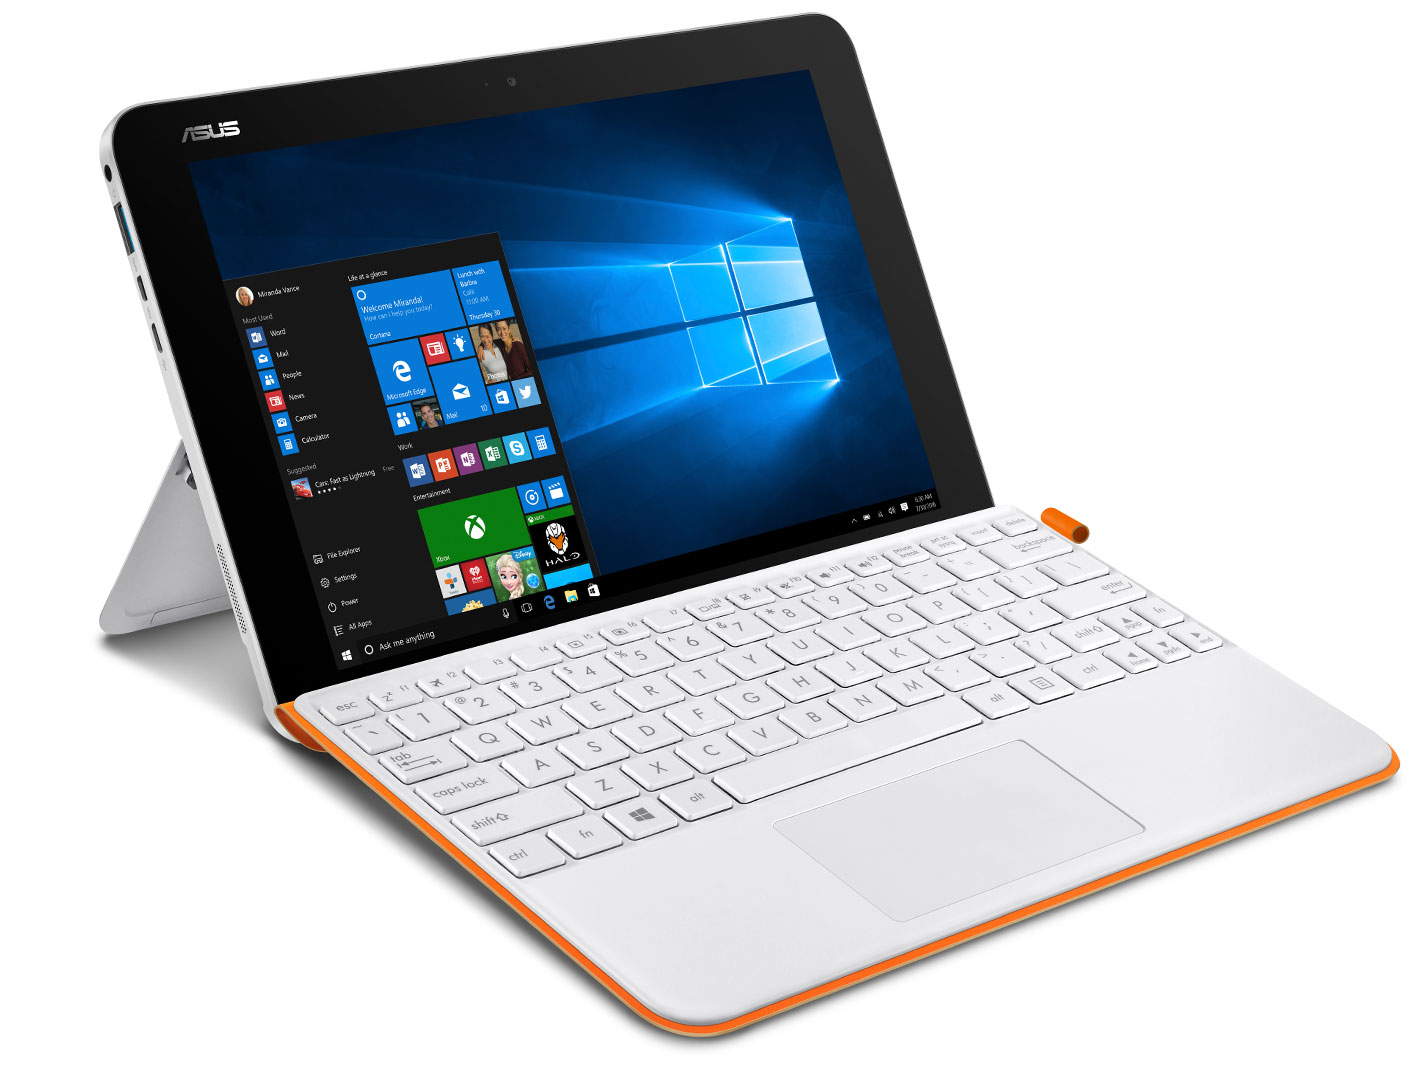 asus transformer mini t102ha 2 in 1 pcs asus usa rh asus com